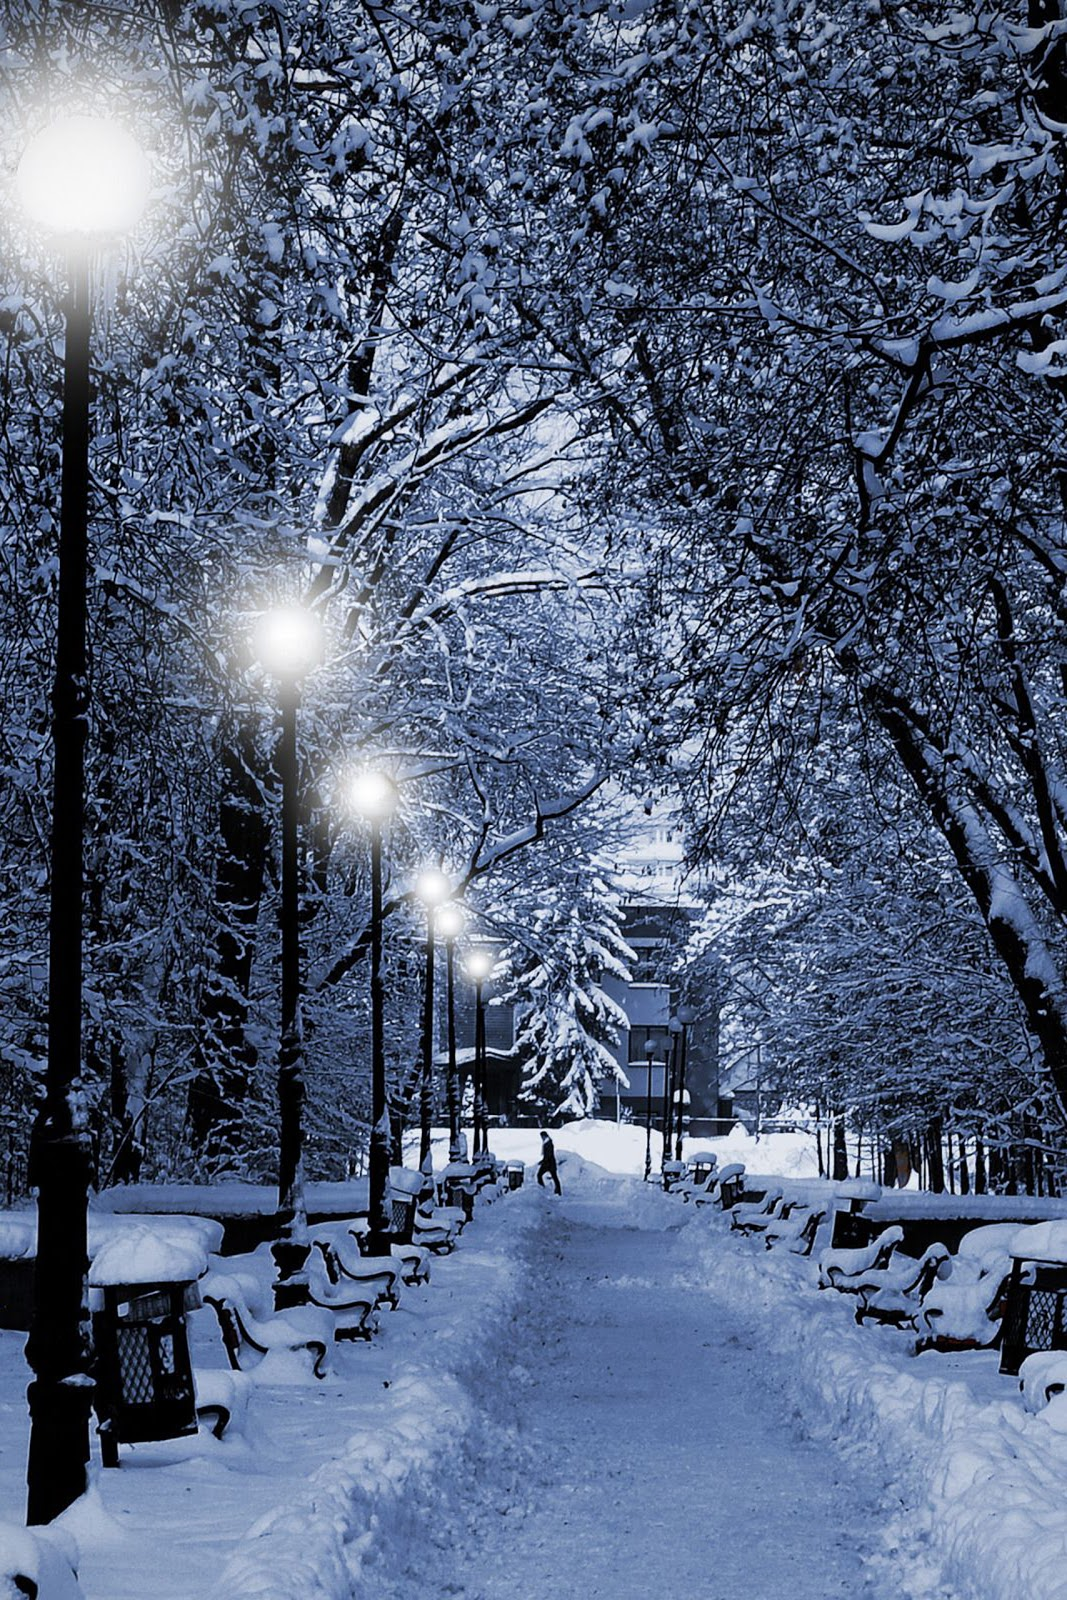 Winter Wallpaper For Iphone PM Iphone apps games wallpapers themes No comments